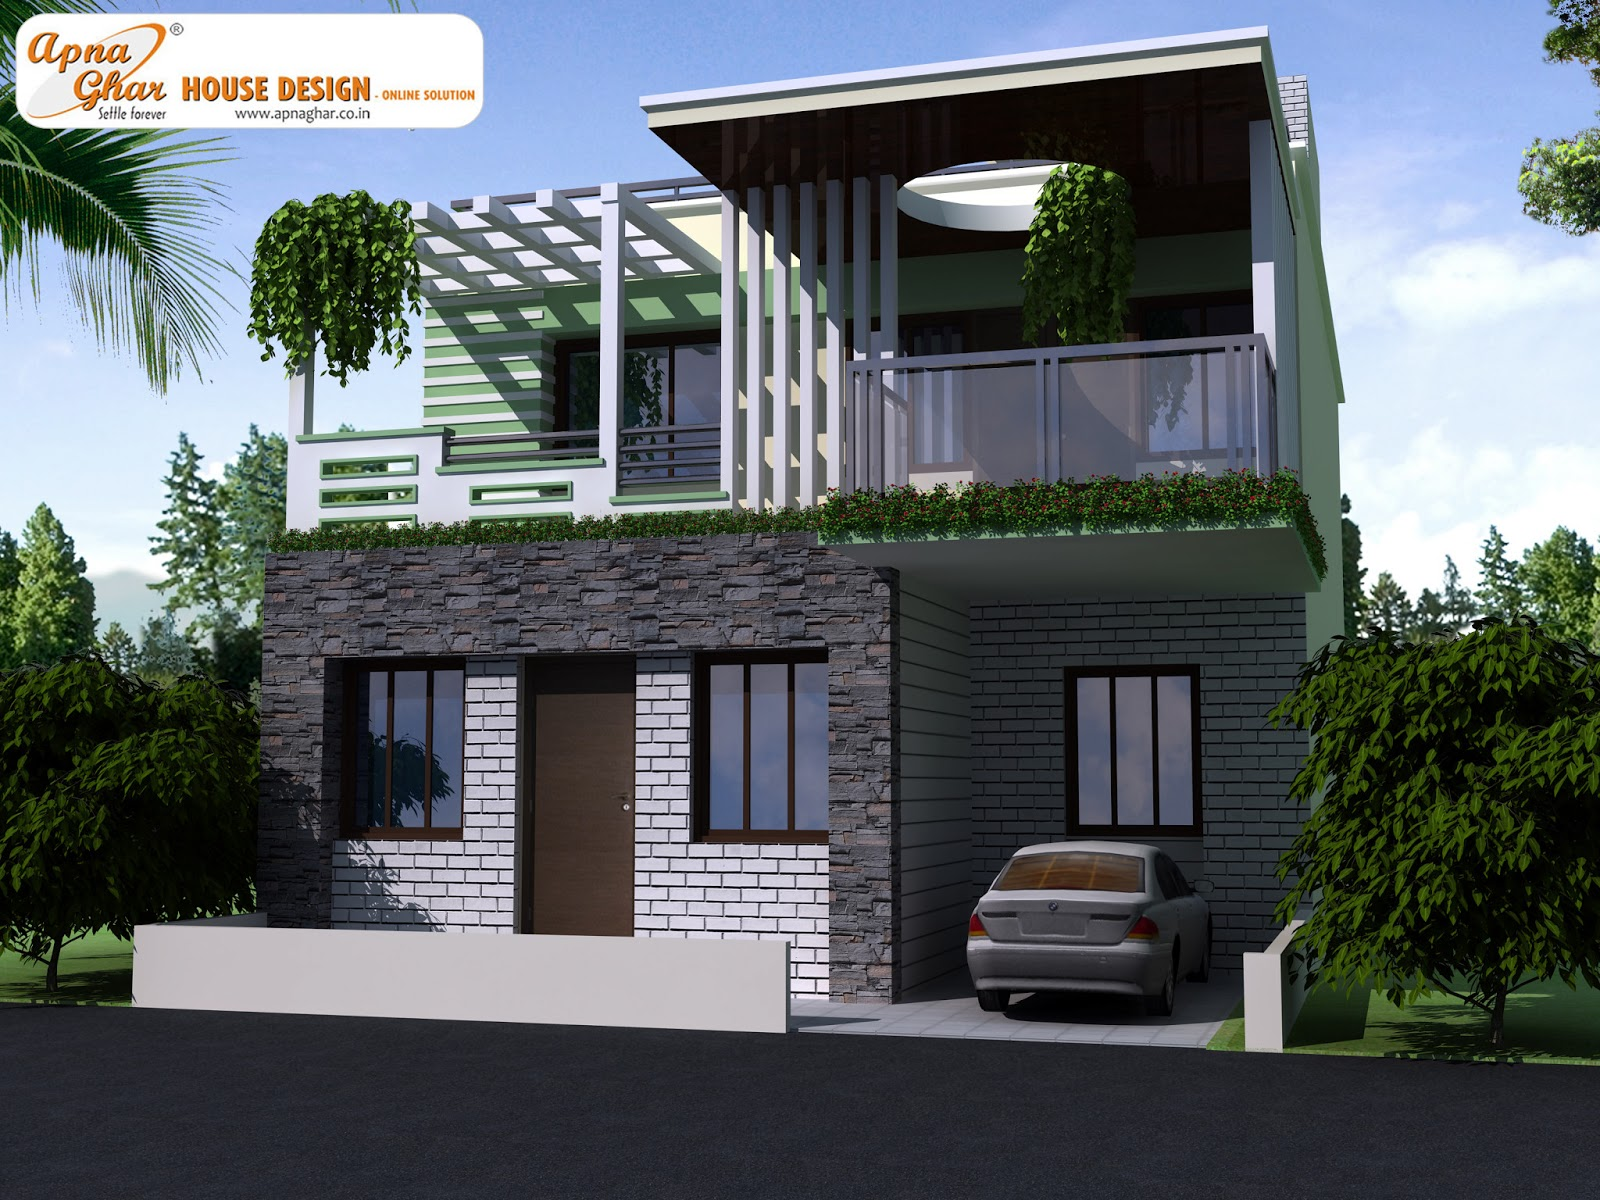 Apnaghar complete architectural solution page 41 for Duplex designs india